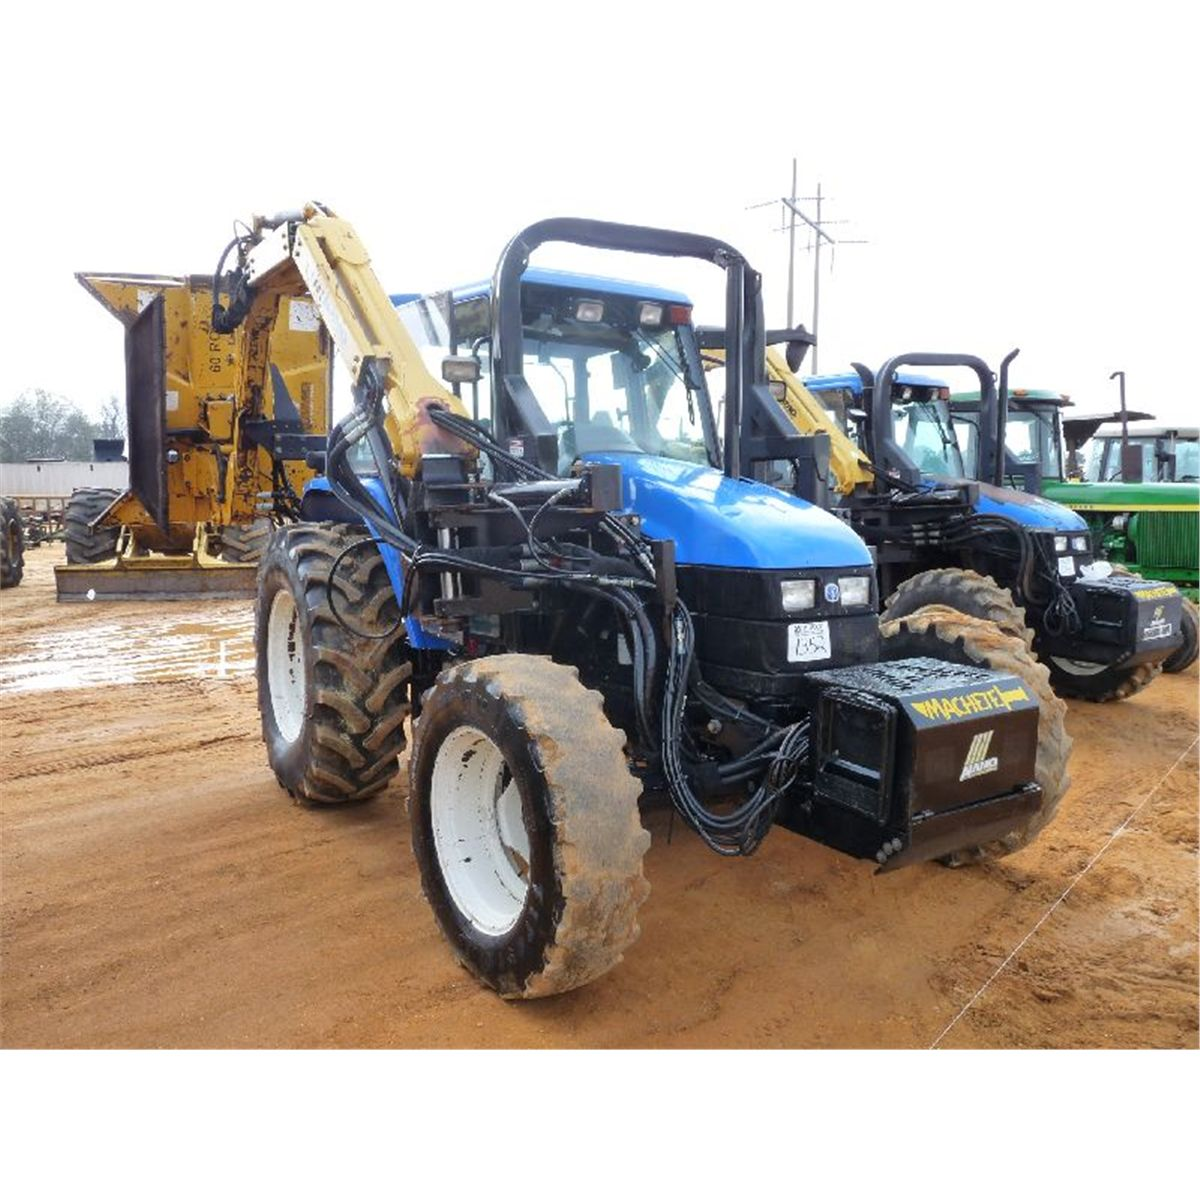 new holland ts110 4x4 farm tractor j m wood auction company inc. Black Bedroom Furniture Sets. Home Design Ideas